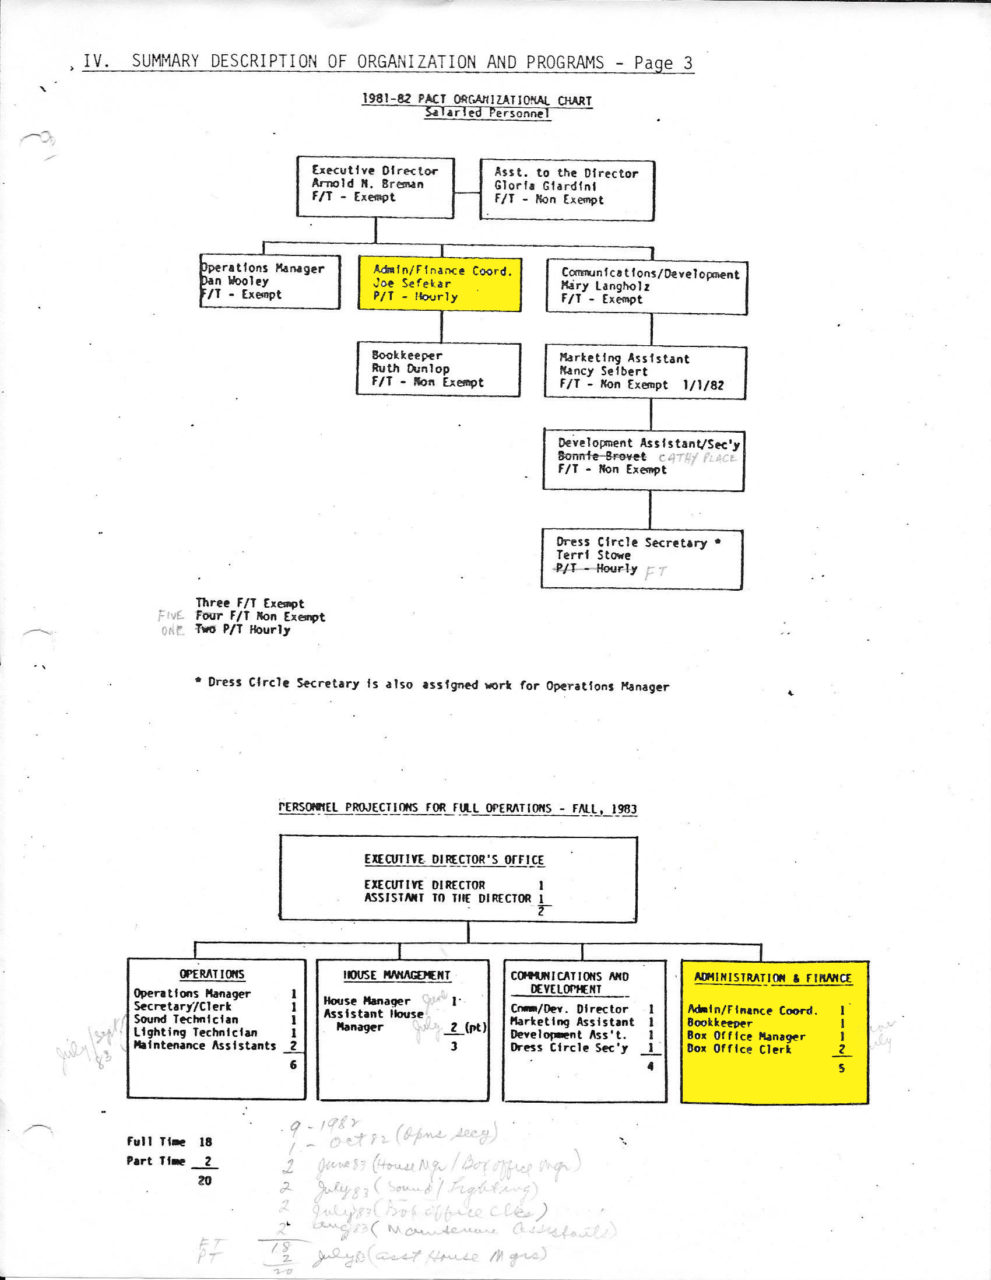 PACT ORGANIZATION AND PROGRAMS 1981-82_edited-1